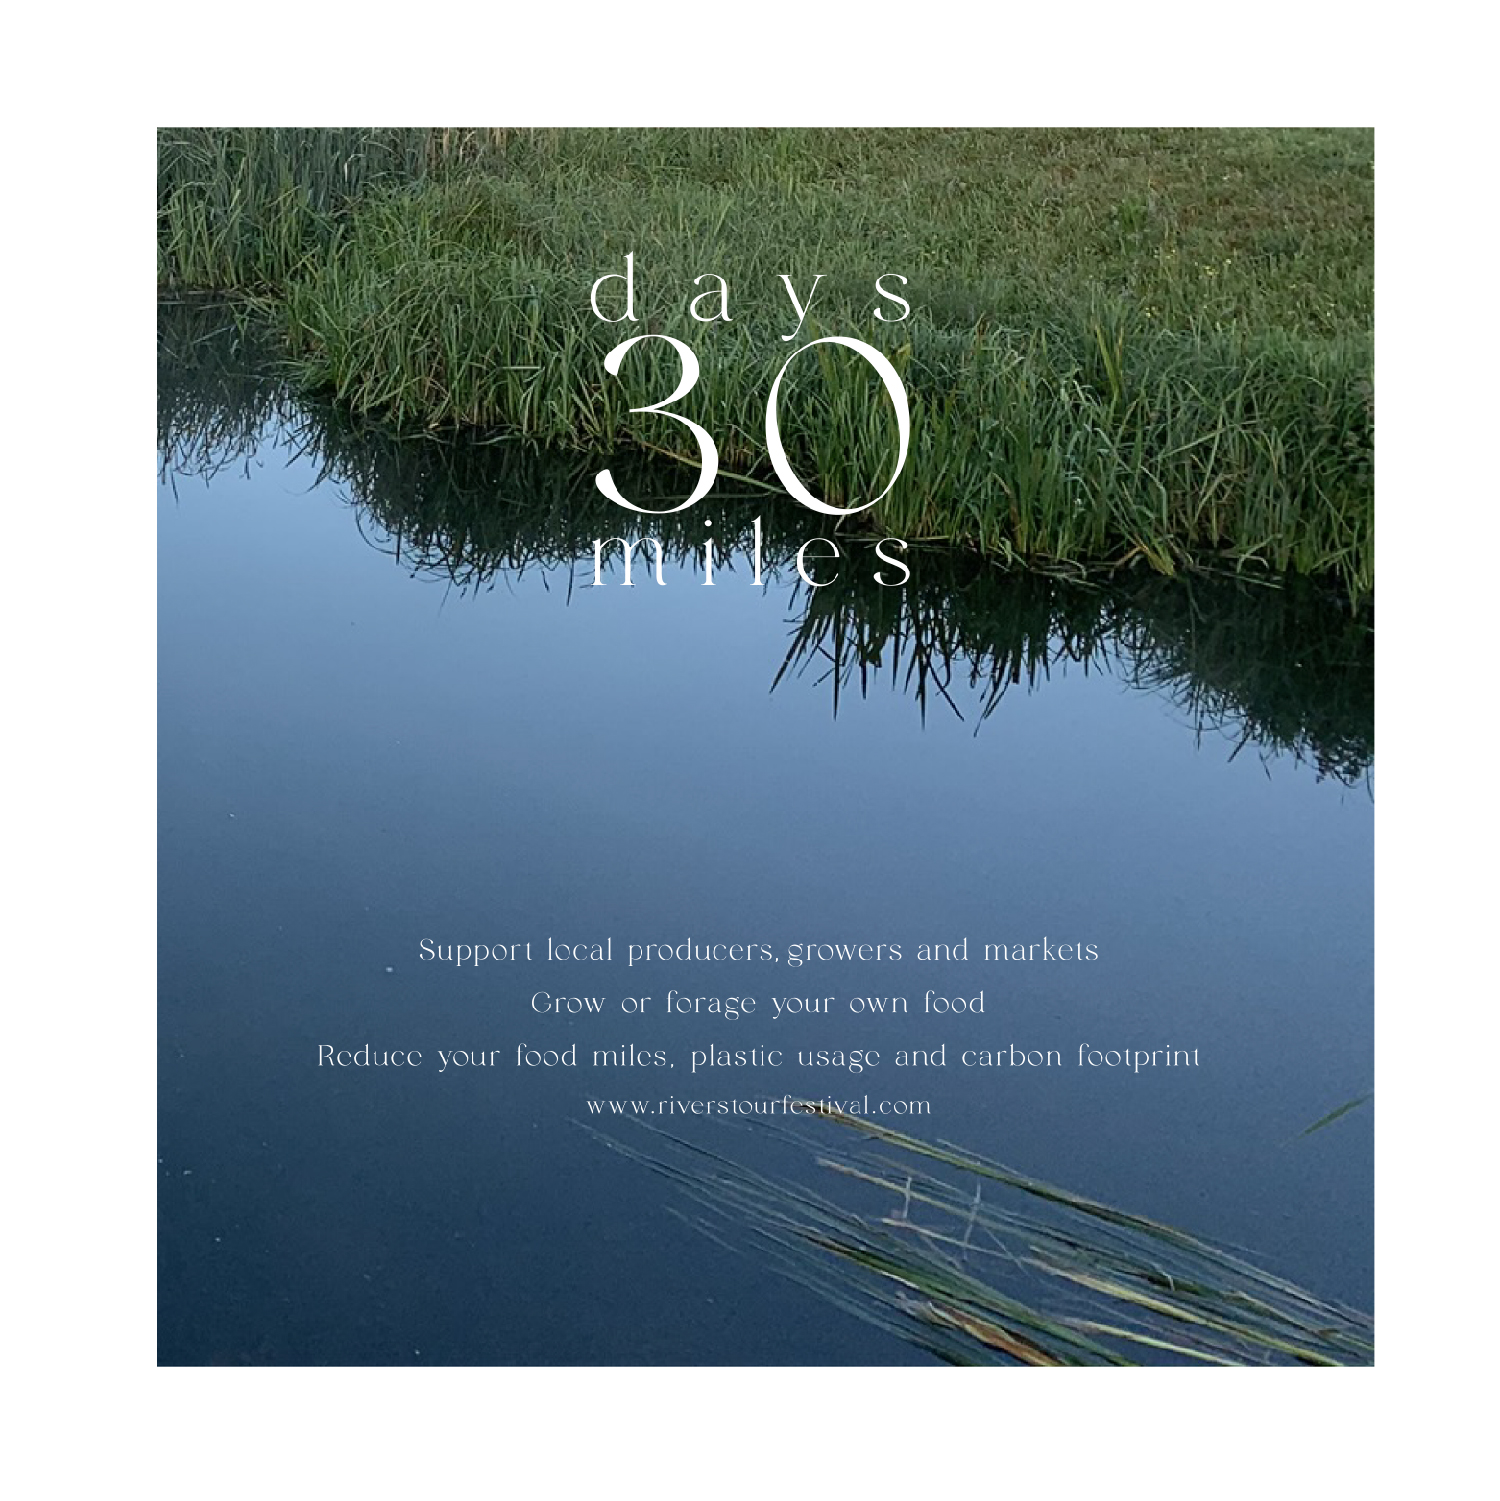 30 Days 30 Miles campaign image, blue river with green reeds